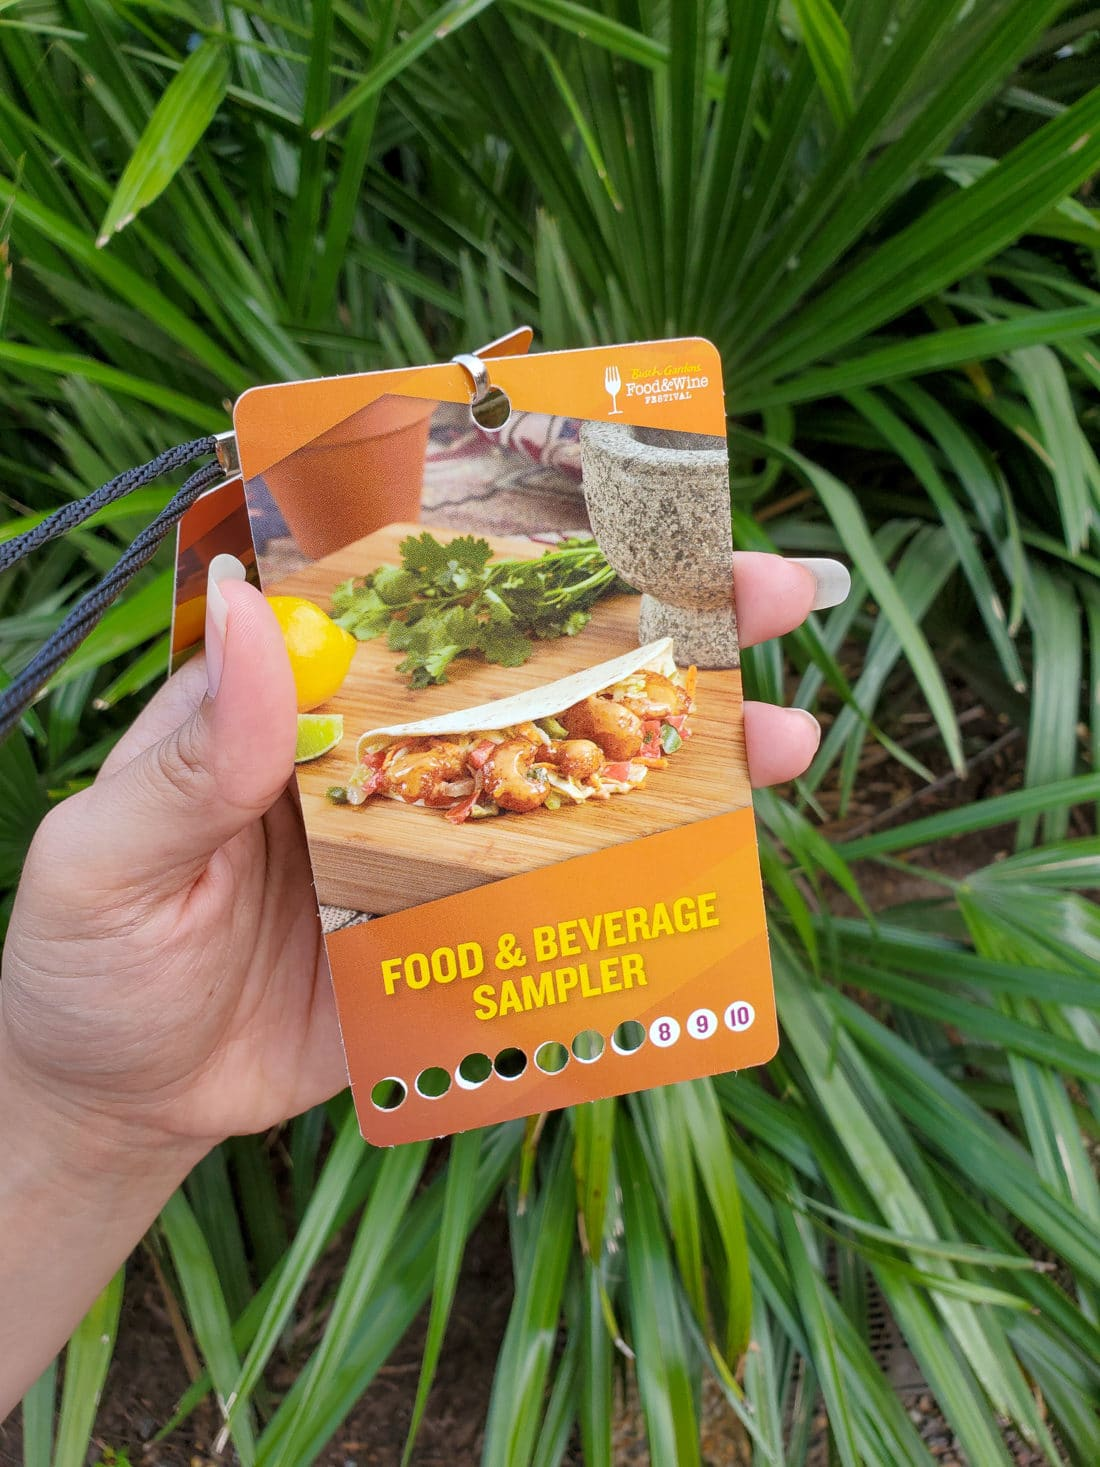 Busch Gardens Food and Wine Festival 2019 Food Sampler Card. Enjoy some delicious food and drinks at the annual Busch Gardens Food and Wine Festival 2019. Featuring 4 new food kiosks and drink stations, there is something for the whole family to enjoy!